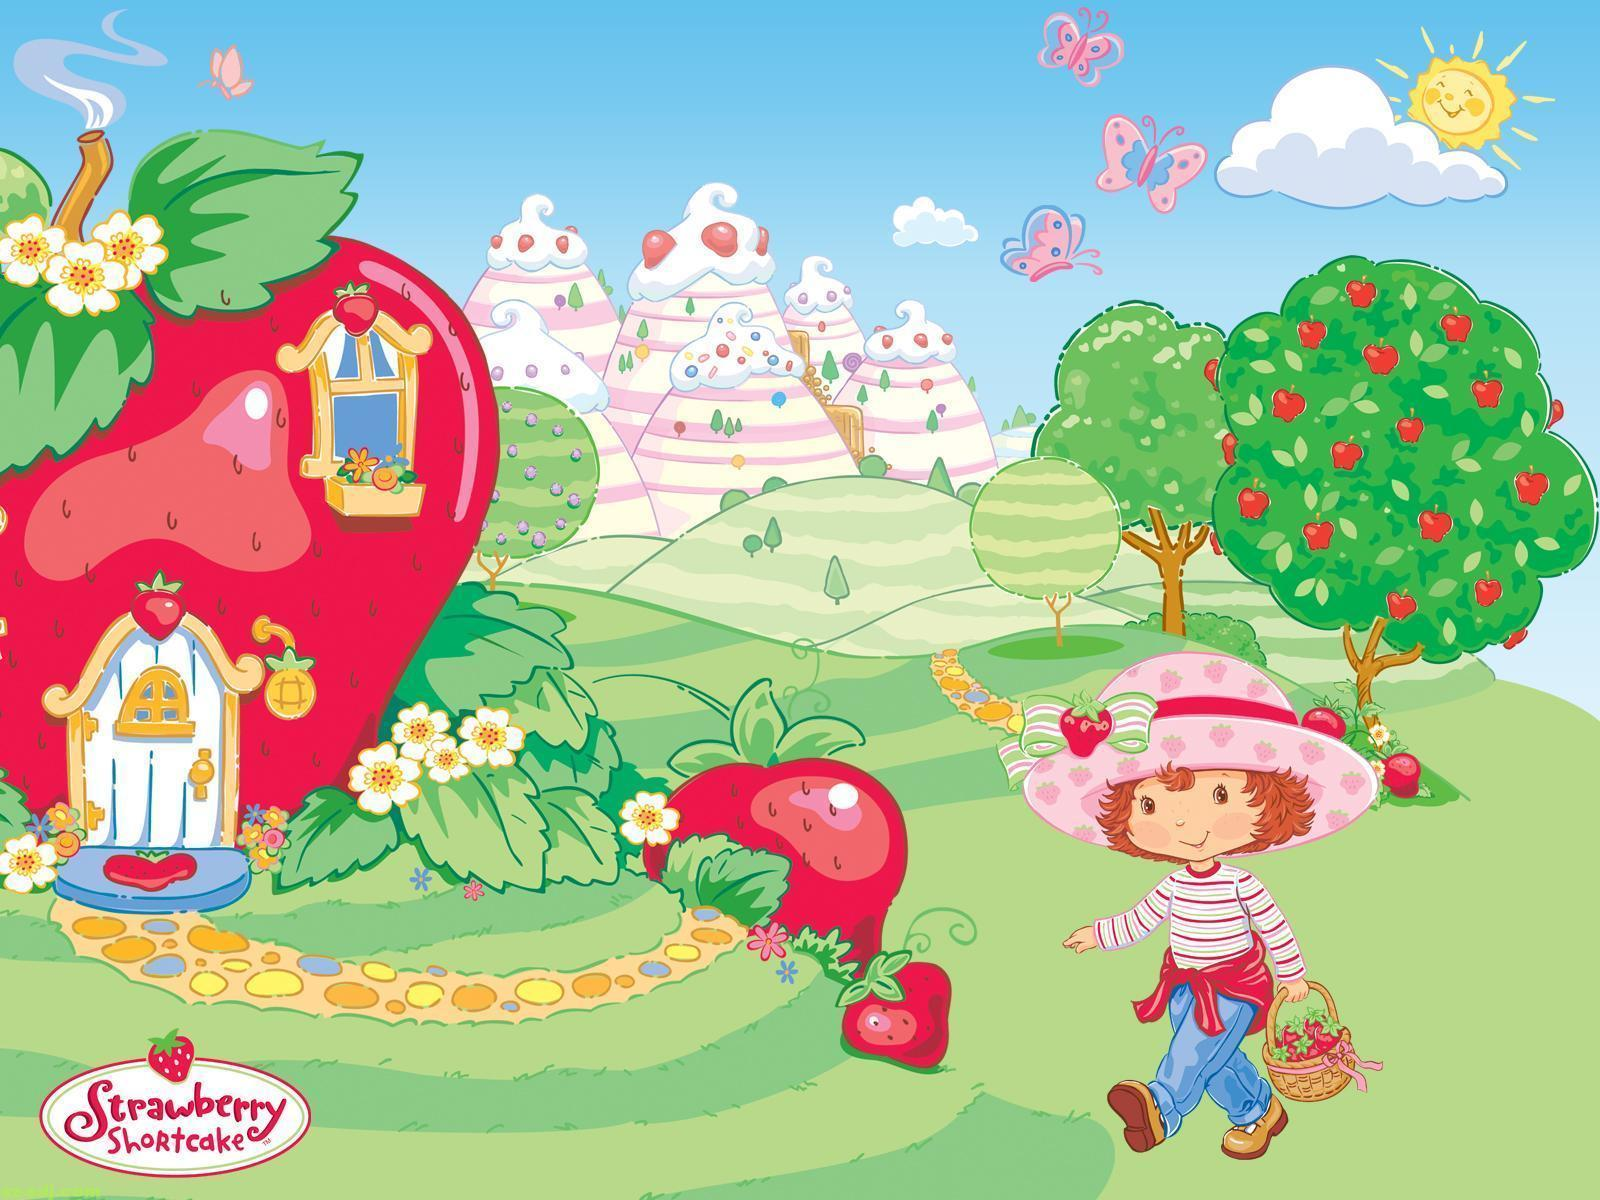 Strawberry Shortcake Wallpapers For Android